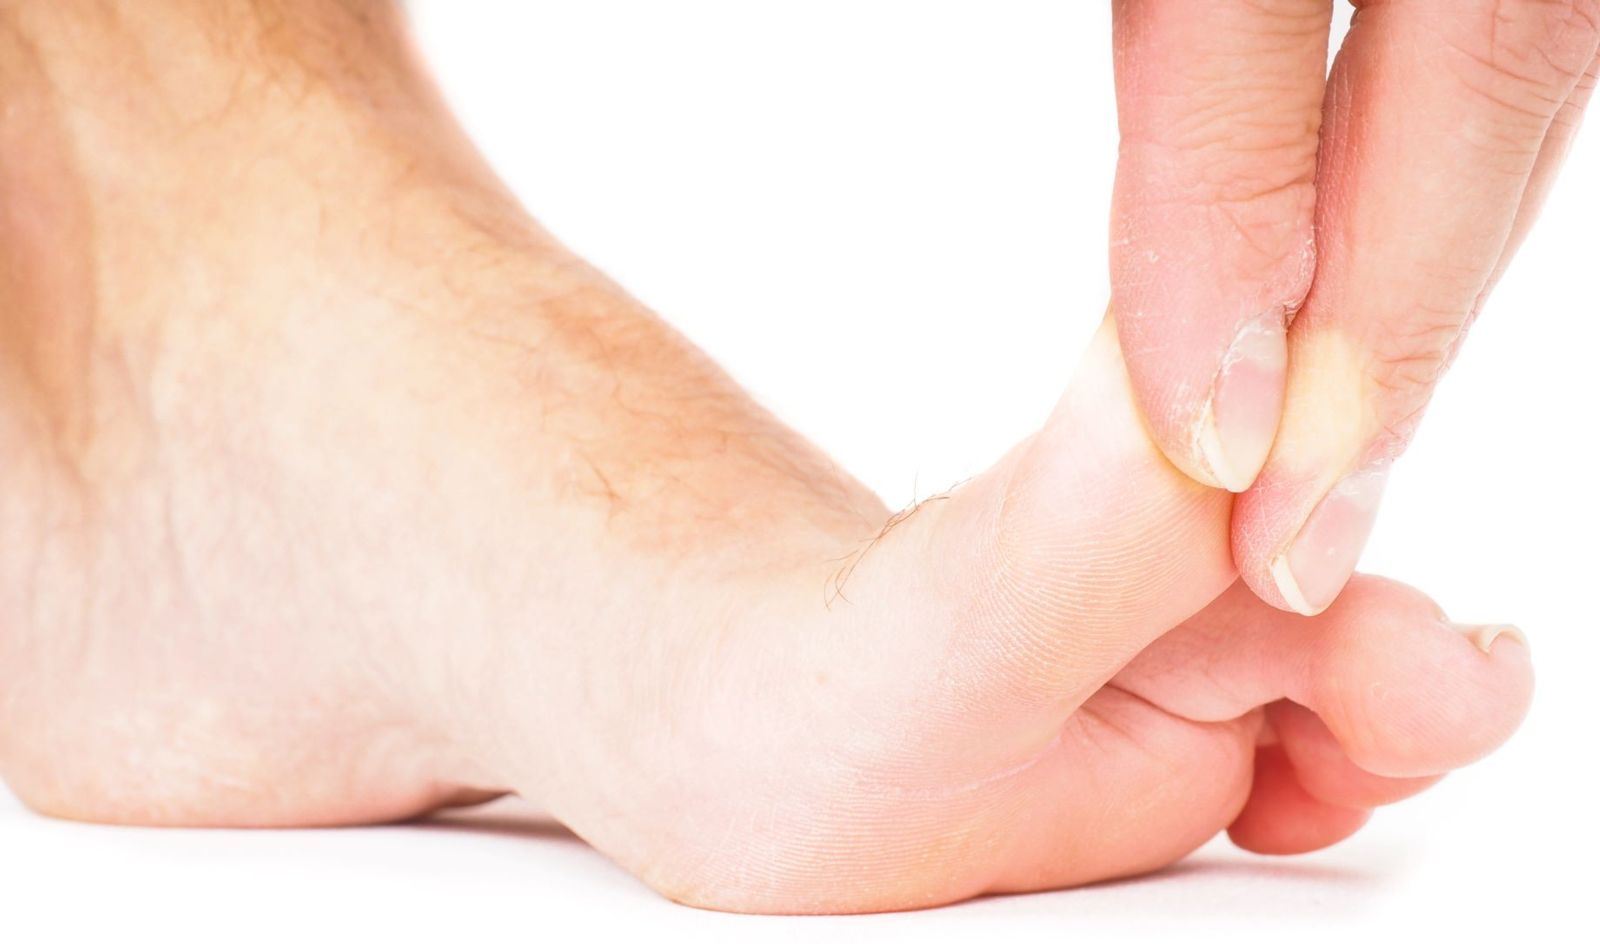 Do your toes hurt? I can help you get to the bottom of what's causing your discomfort!